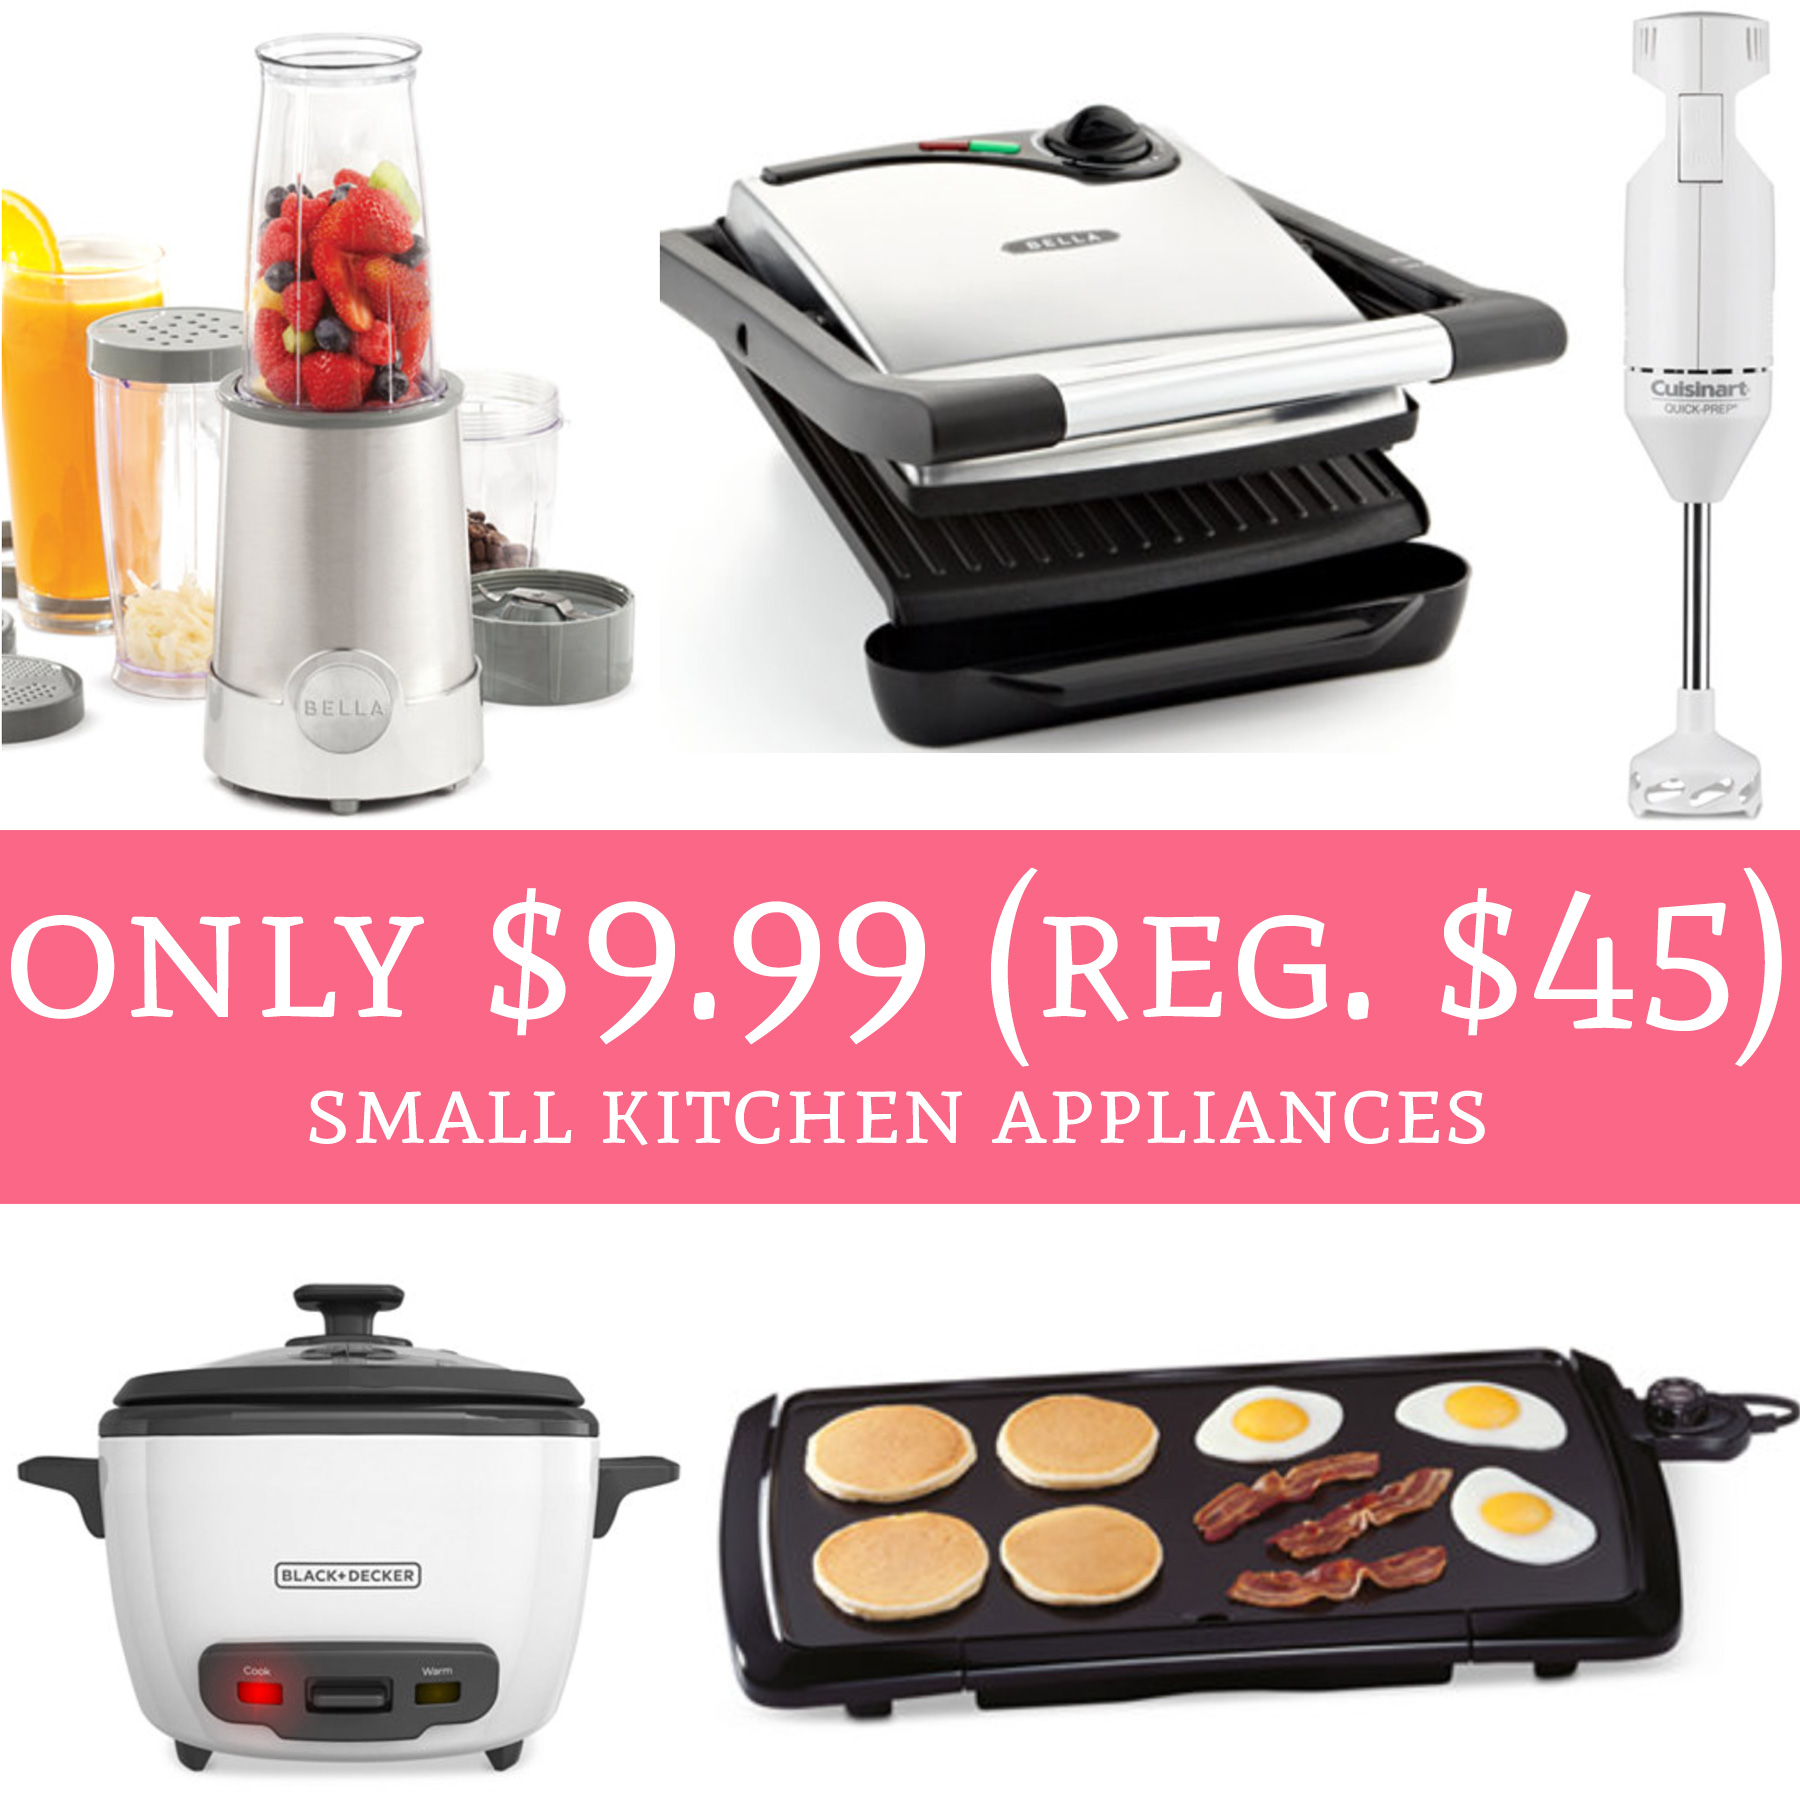 HOT! Only $9.99 Regular $45 Small Kitchen Appliances!  Deal Hunting Babe